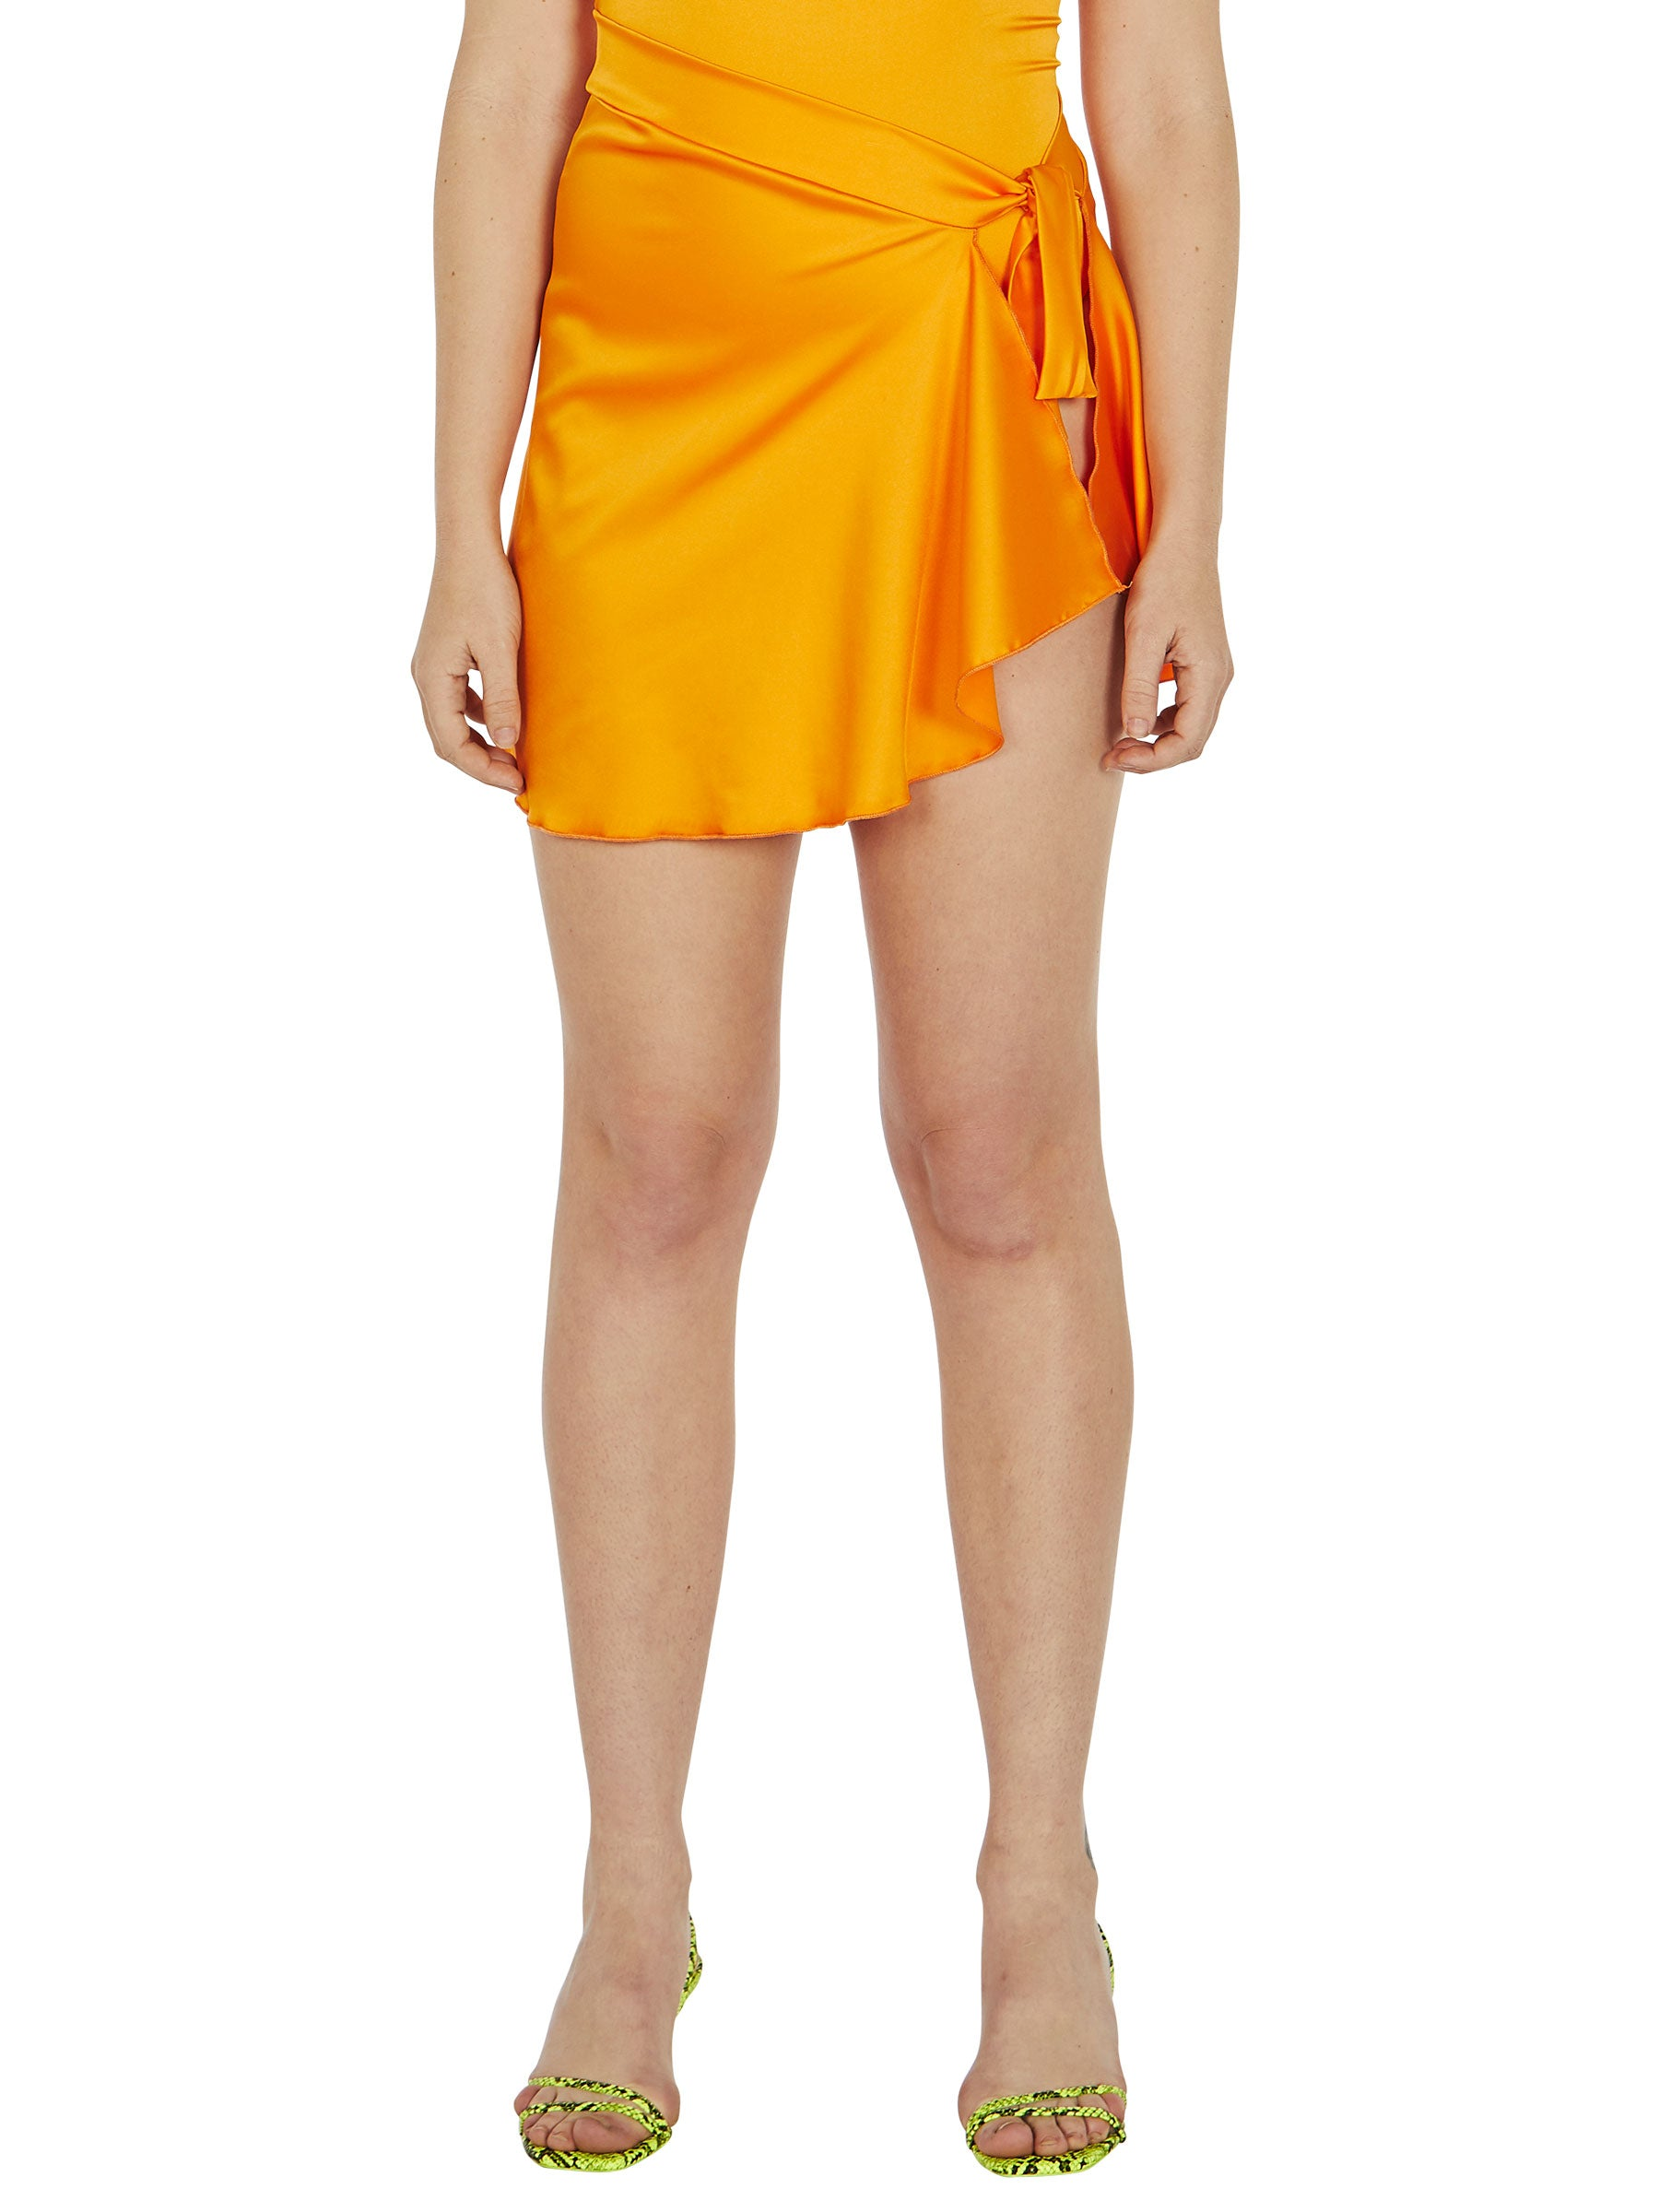 odd92 Fantabody Orange Satin Sarong Spring/Summer 2019 Womenswear - 3